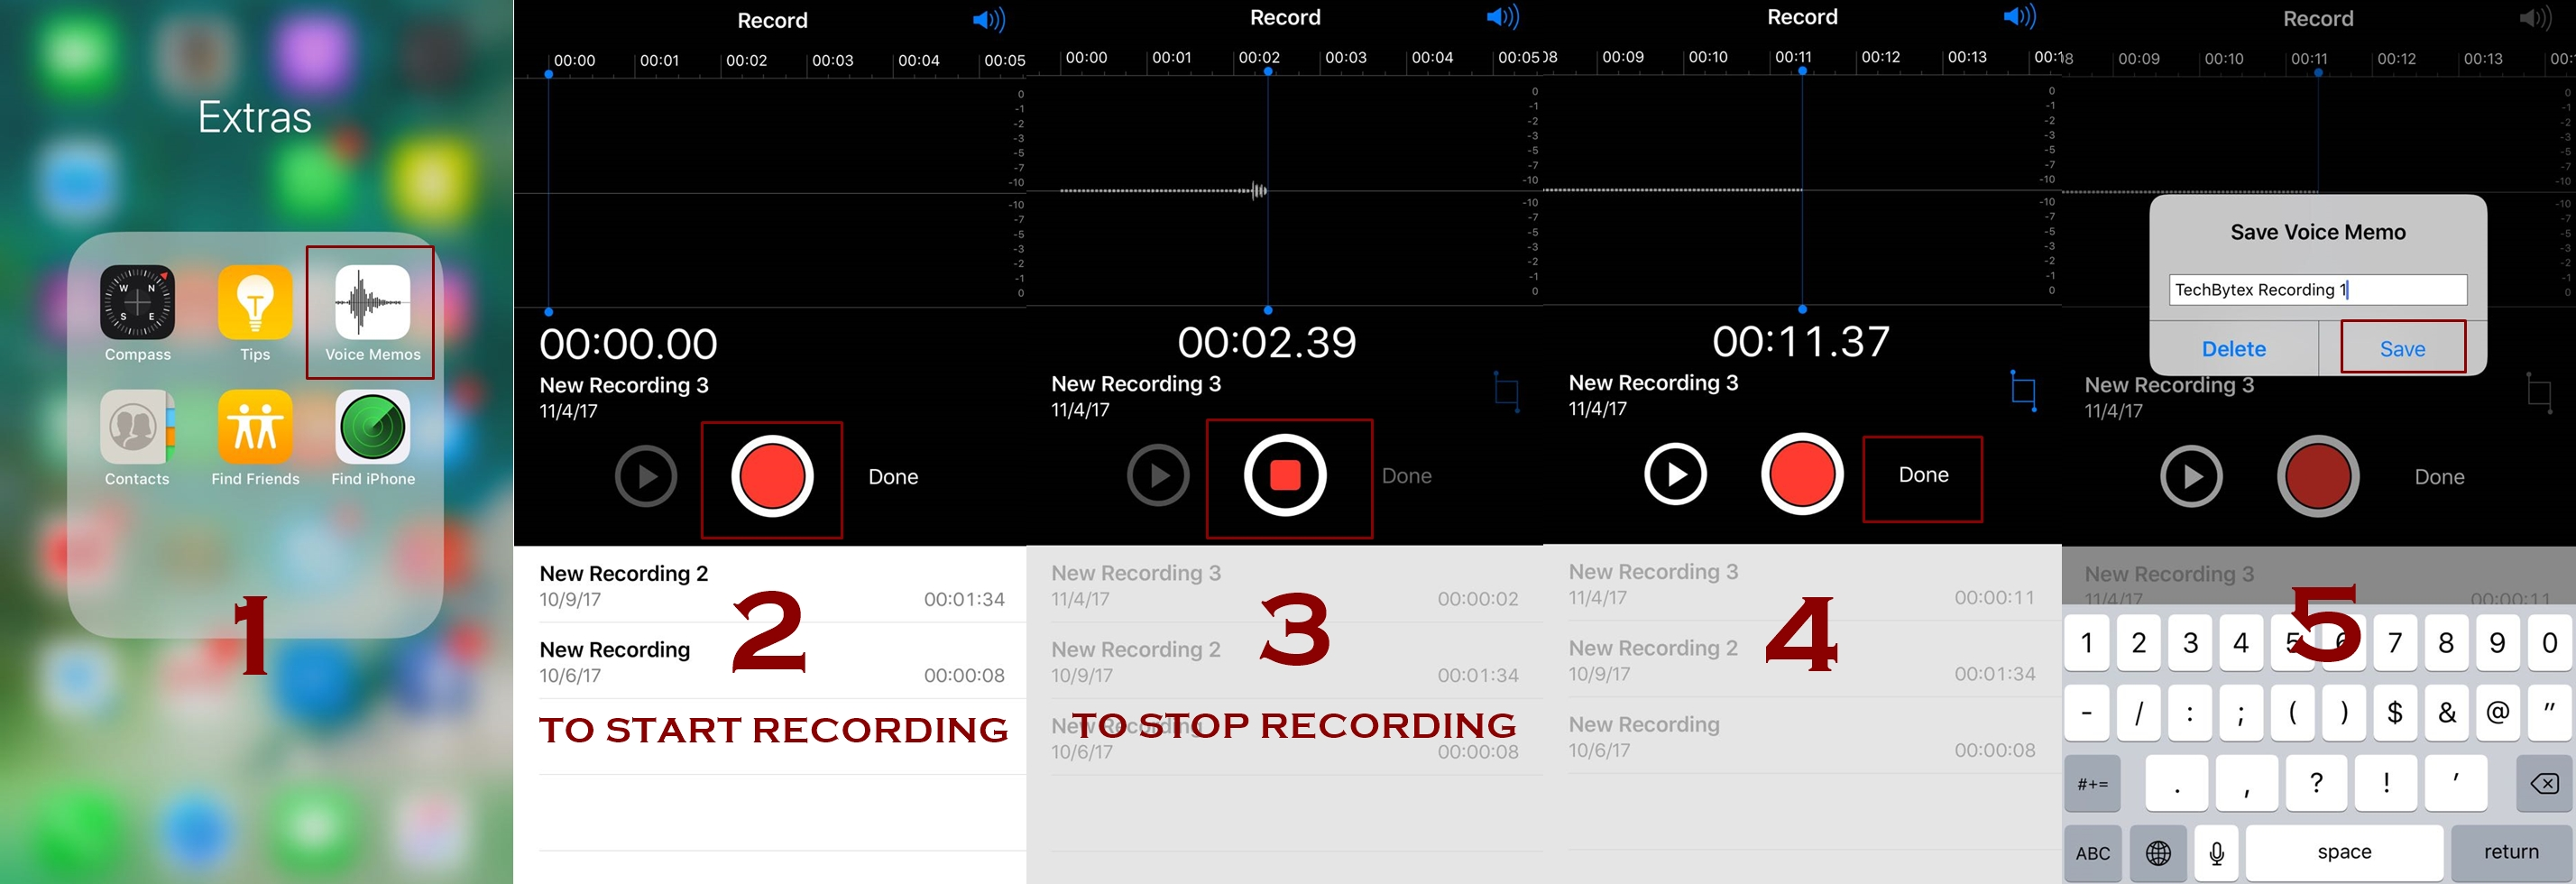 how to record voice memos in iphone - How to use and record voice memos in iPhone